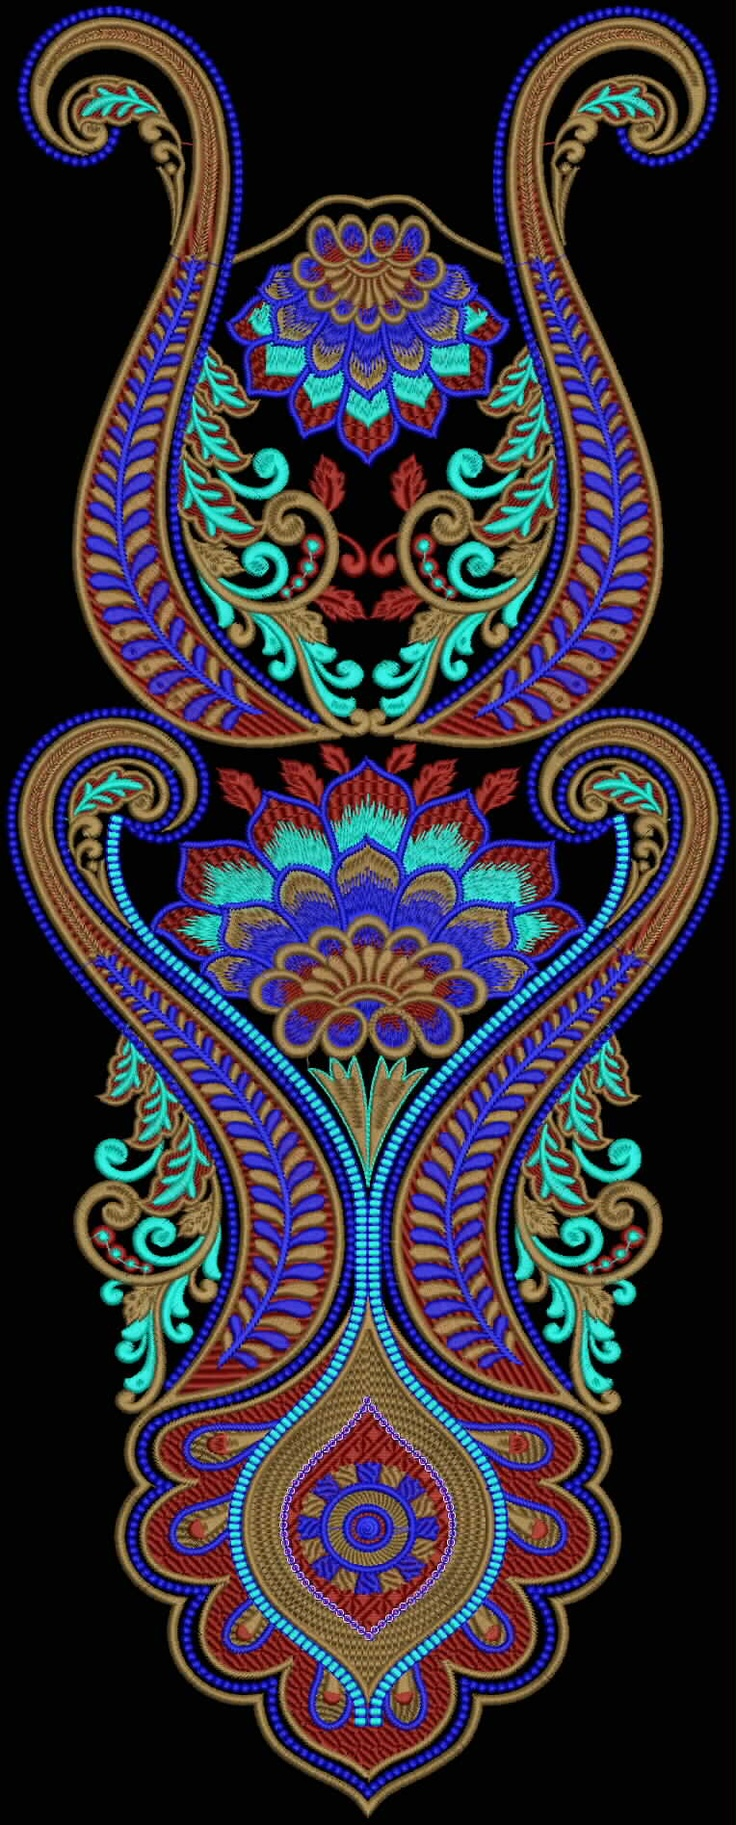 Latest Embroidery Designs For Sale, If U Want Embroidery Designs Plz Contact (Khalid Mahmood, +92-300-9406667)  www.embroiderydesignss.blogspot.com  Design# Ruksa8